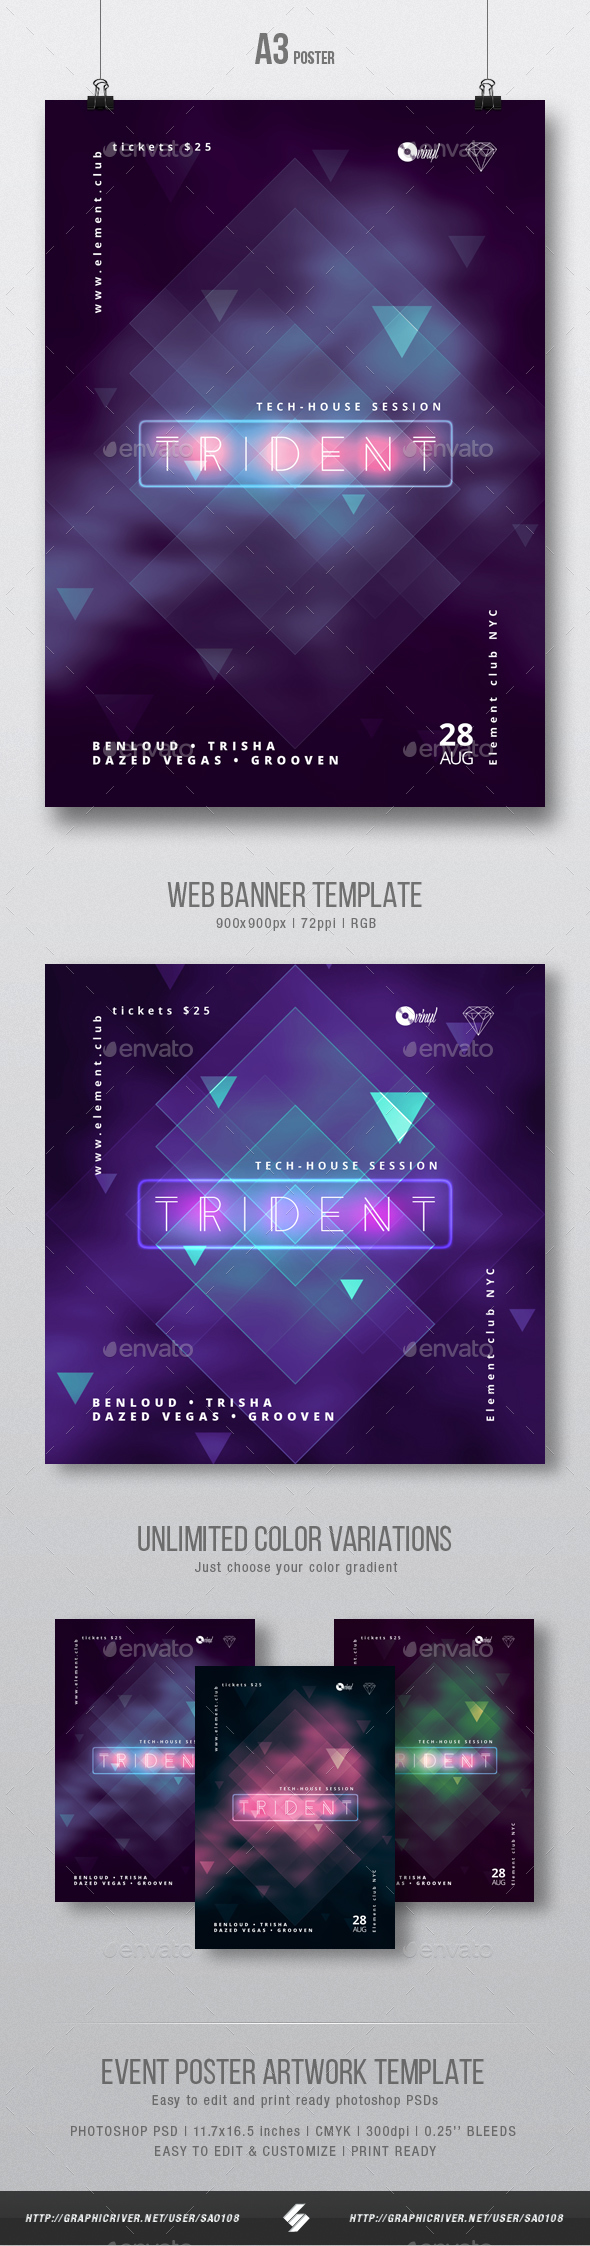 Trident - Neon Party Flyer / Poster Template A3 - Clubs & Parties Events